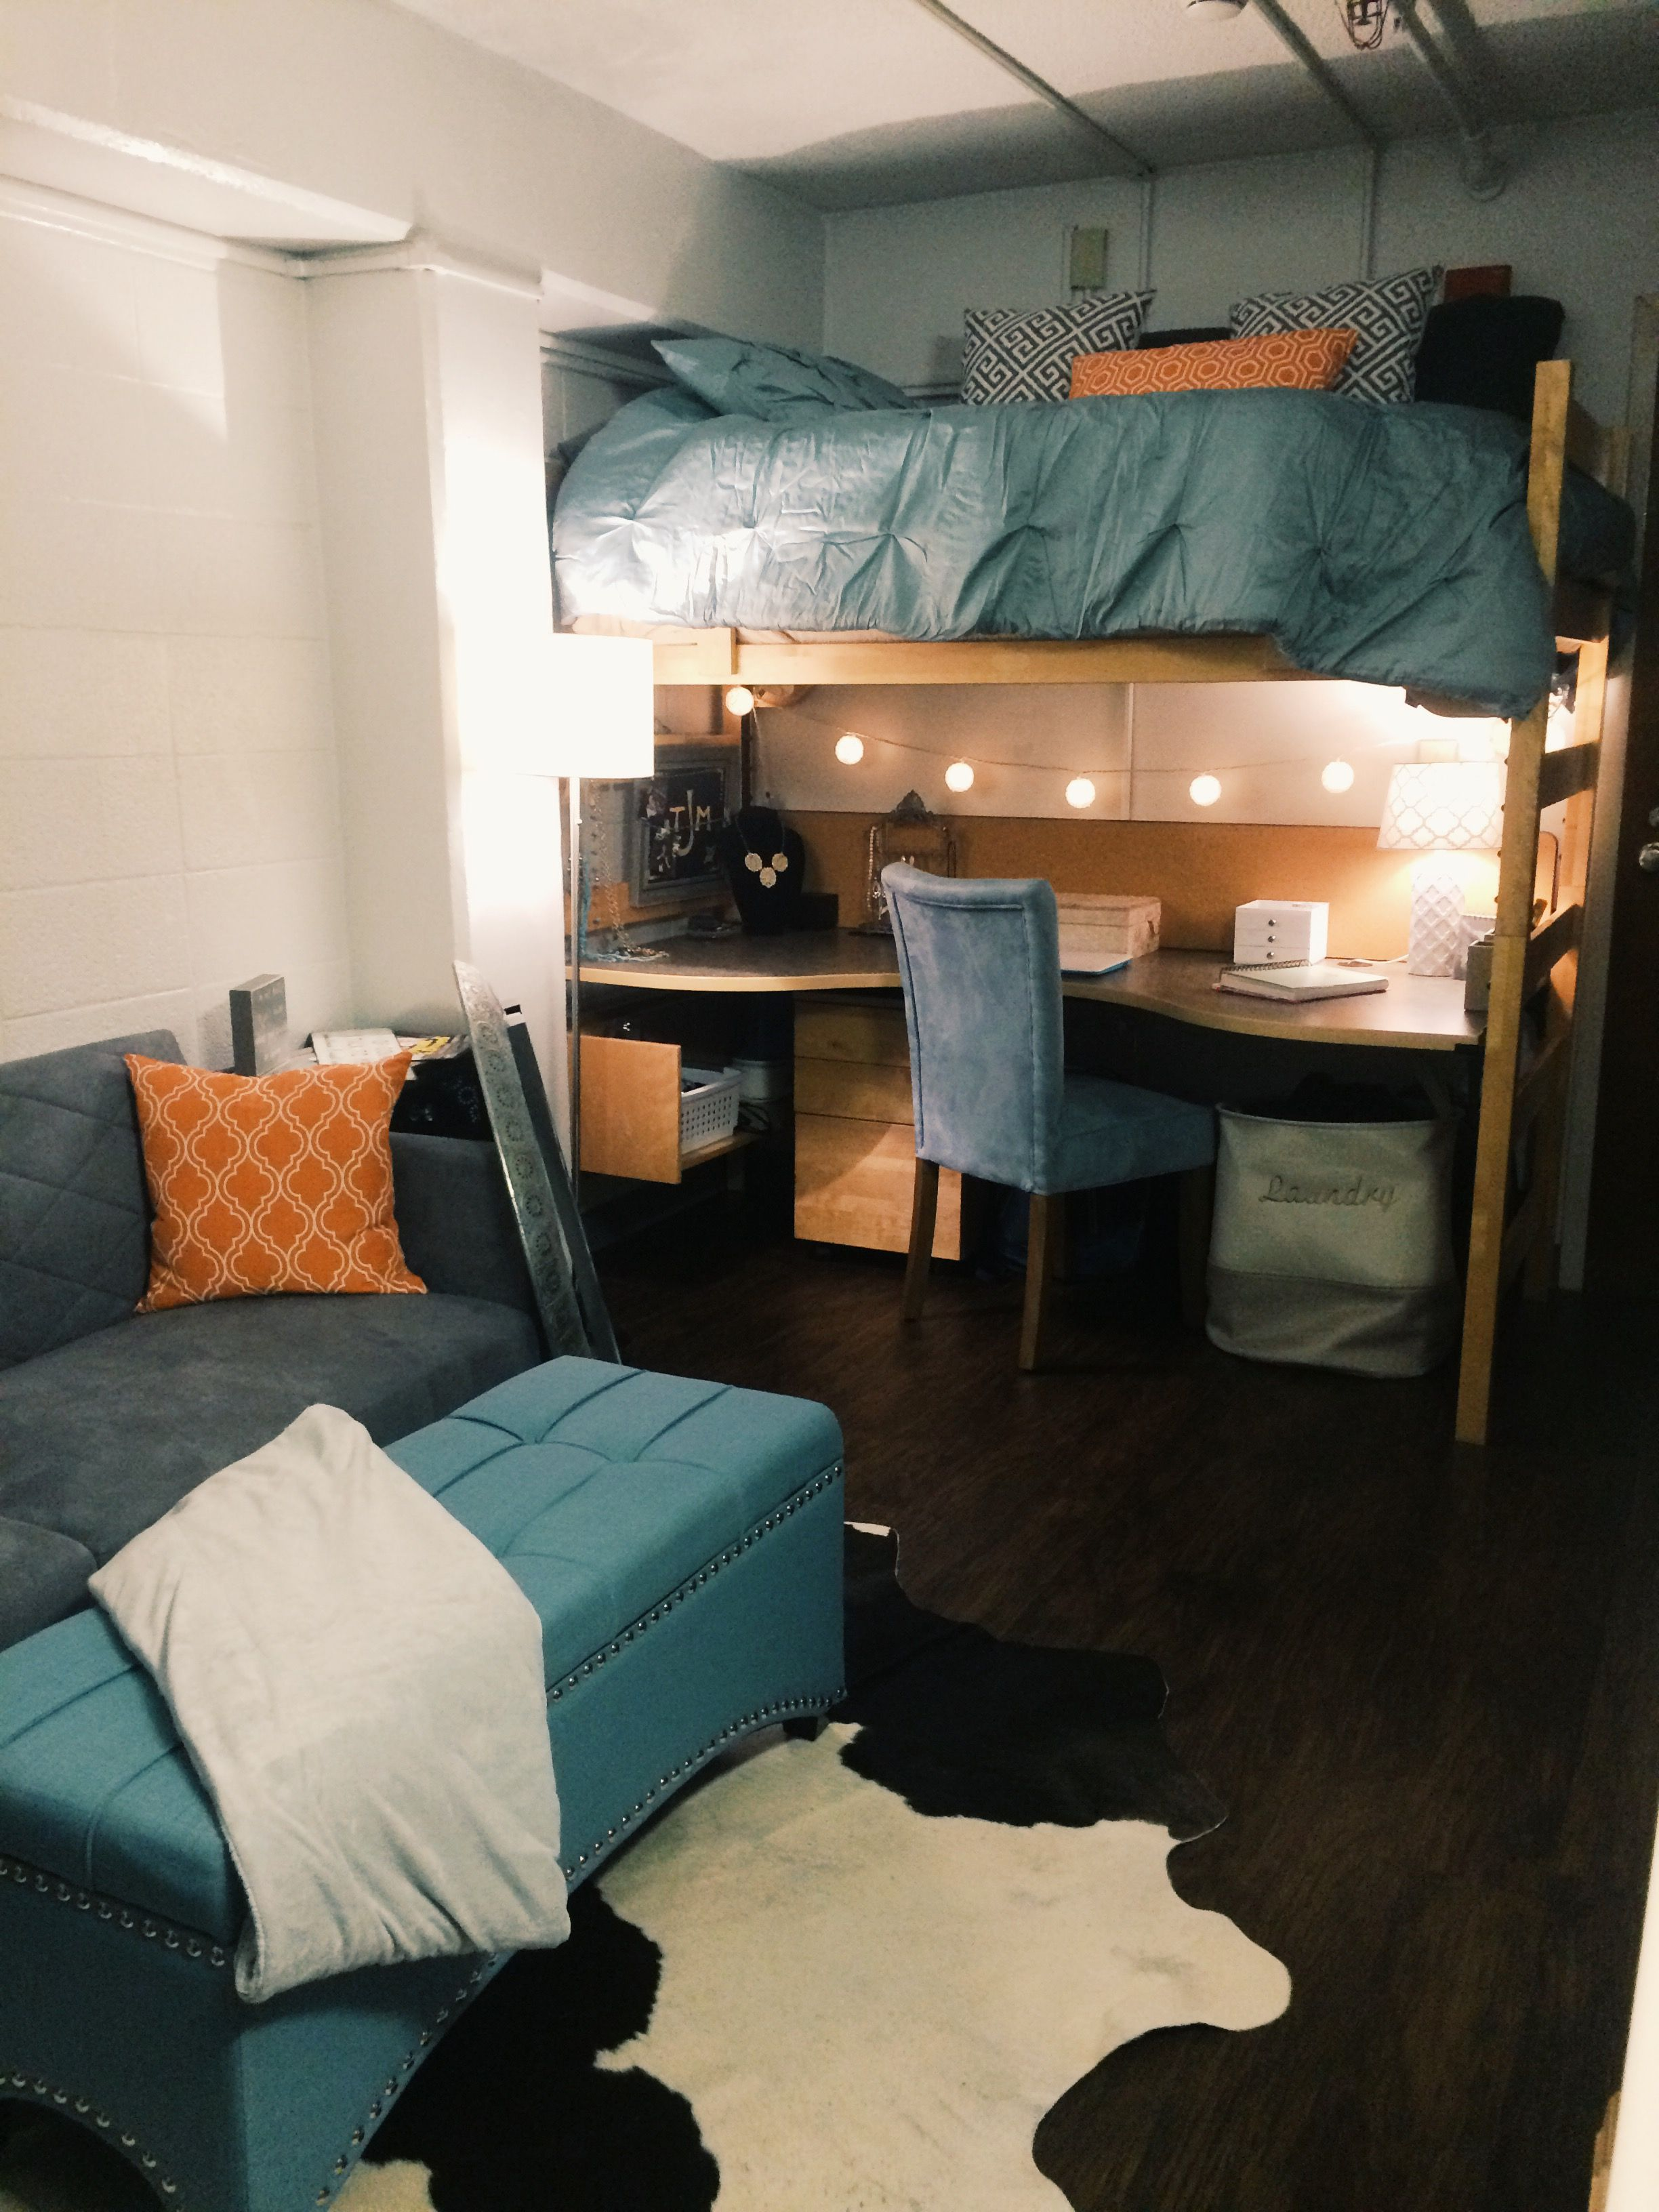 College Dorm Room Design: Other Half Of The Dorm Room In Morril Hall At The